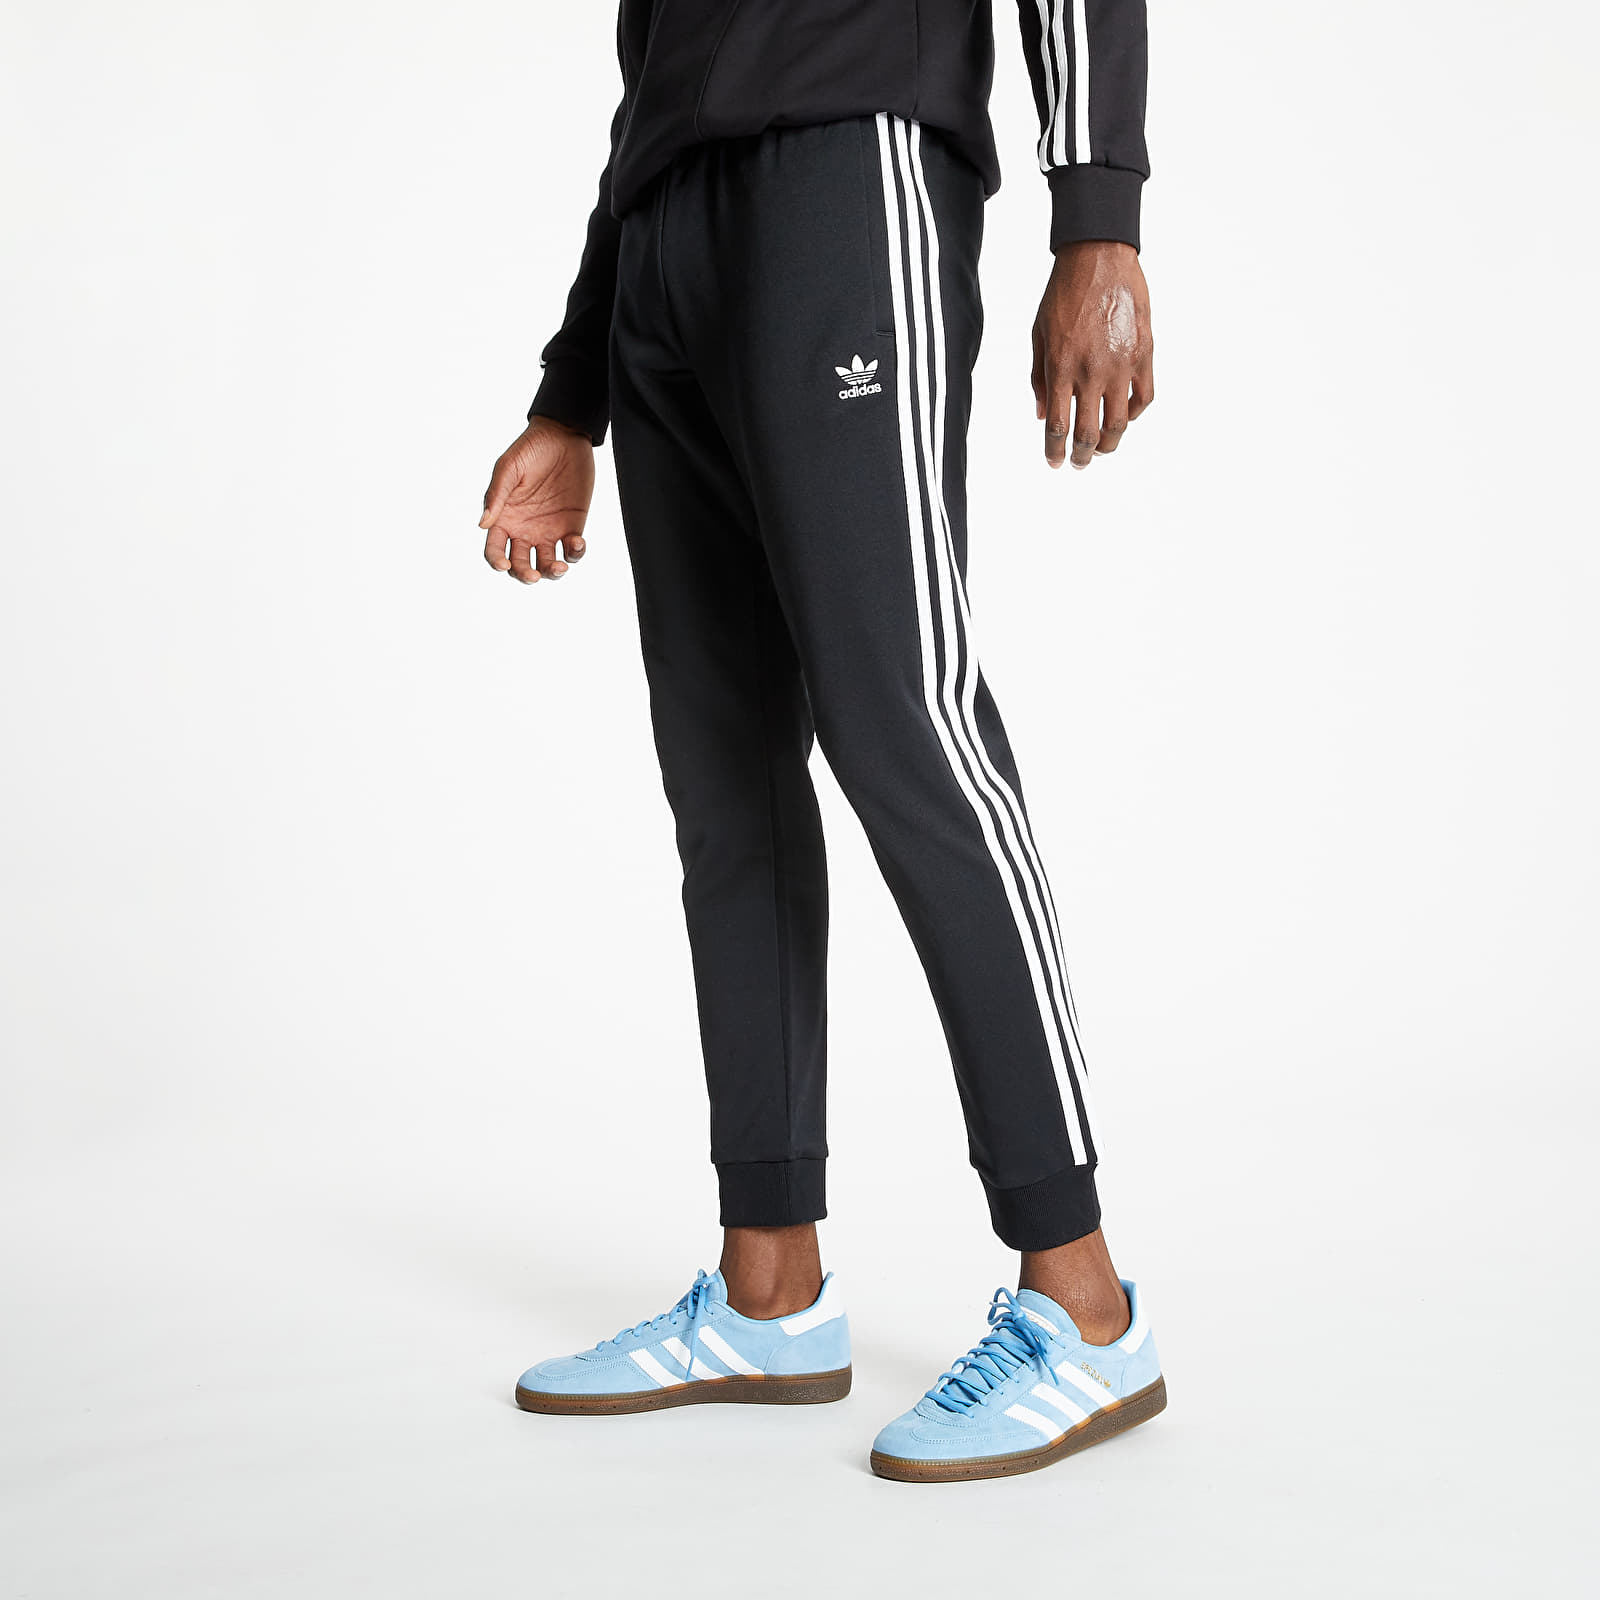 enseñar Comida Devastar  Pantalons adidas Superstar Trackpants Prime Blue Black/ White